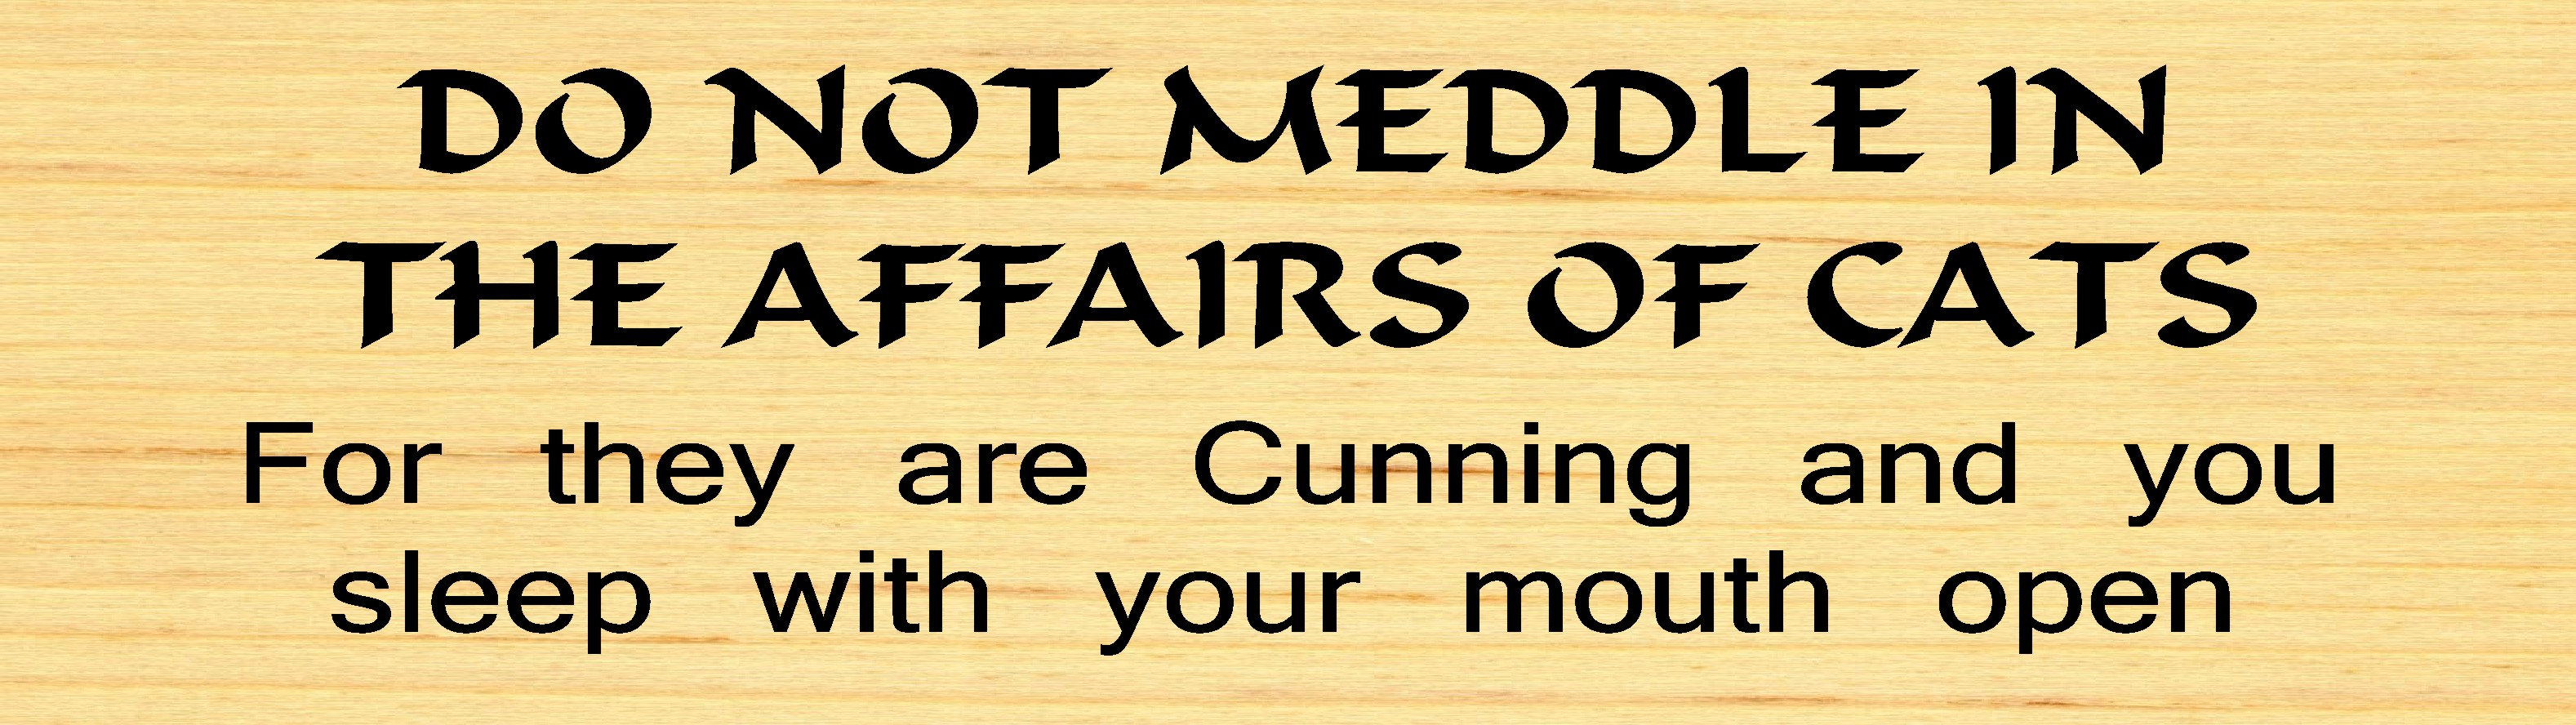 "DO NOT MEDDLE IN THE AFFAIRS OF CATS 10.5"" X 3"" WOODEN BLOCK SIGN"